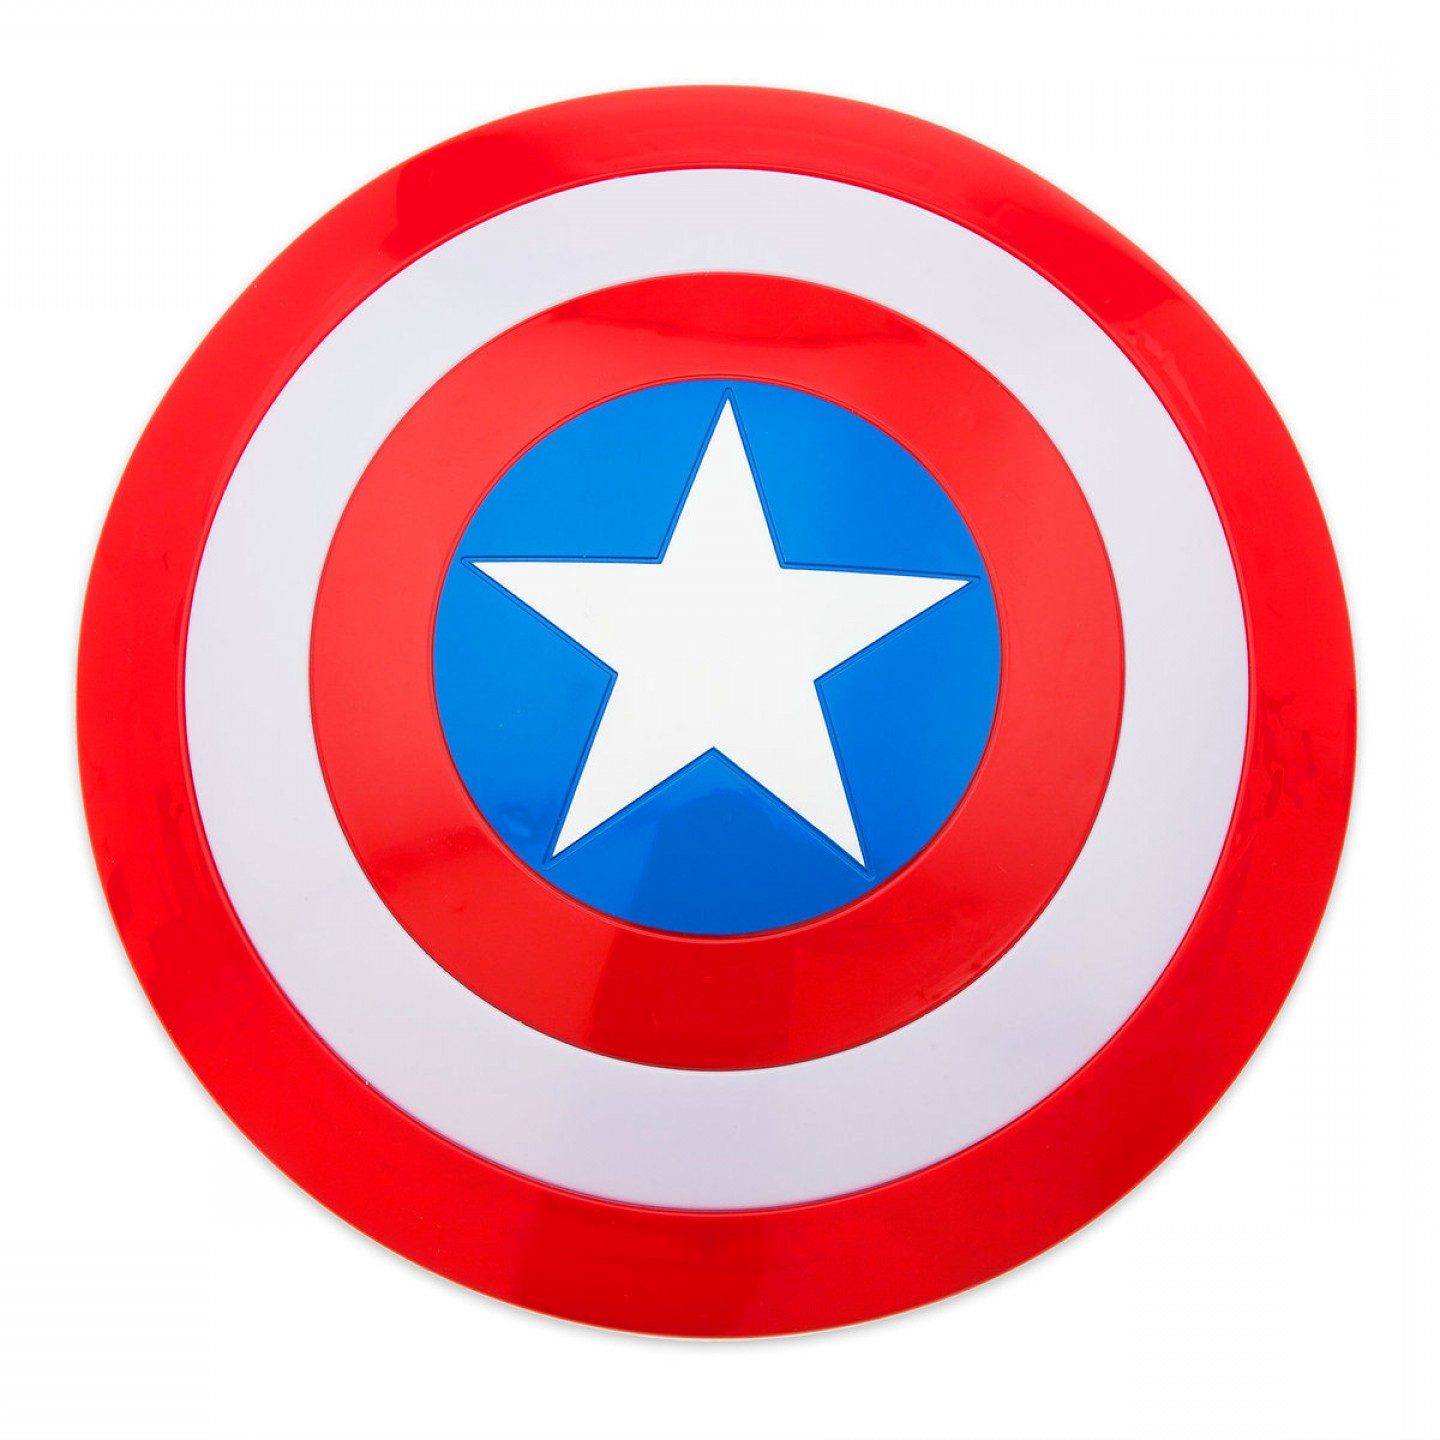 1440x1440 Captain America Shield Marvels Avengers Infinity War Shopatcloth